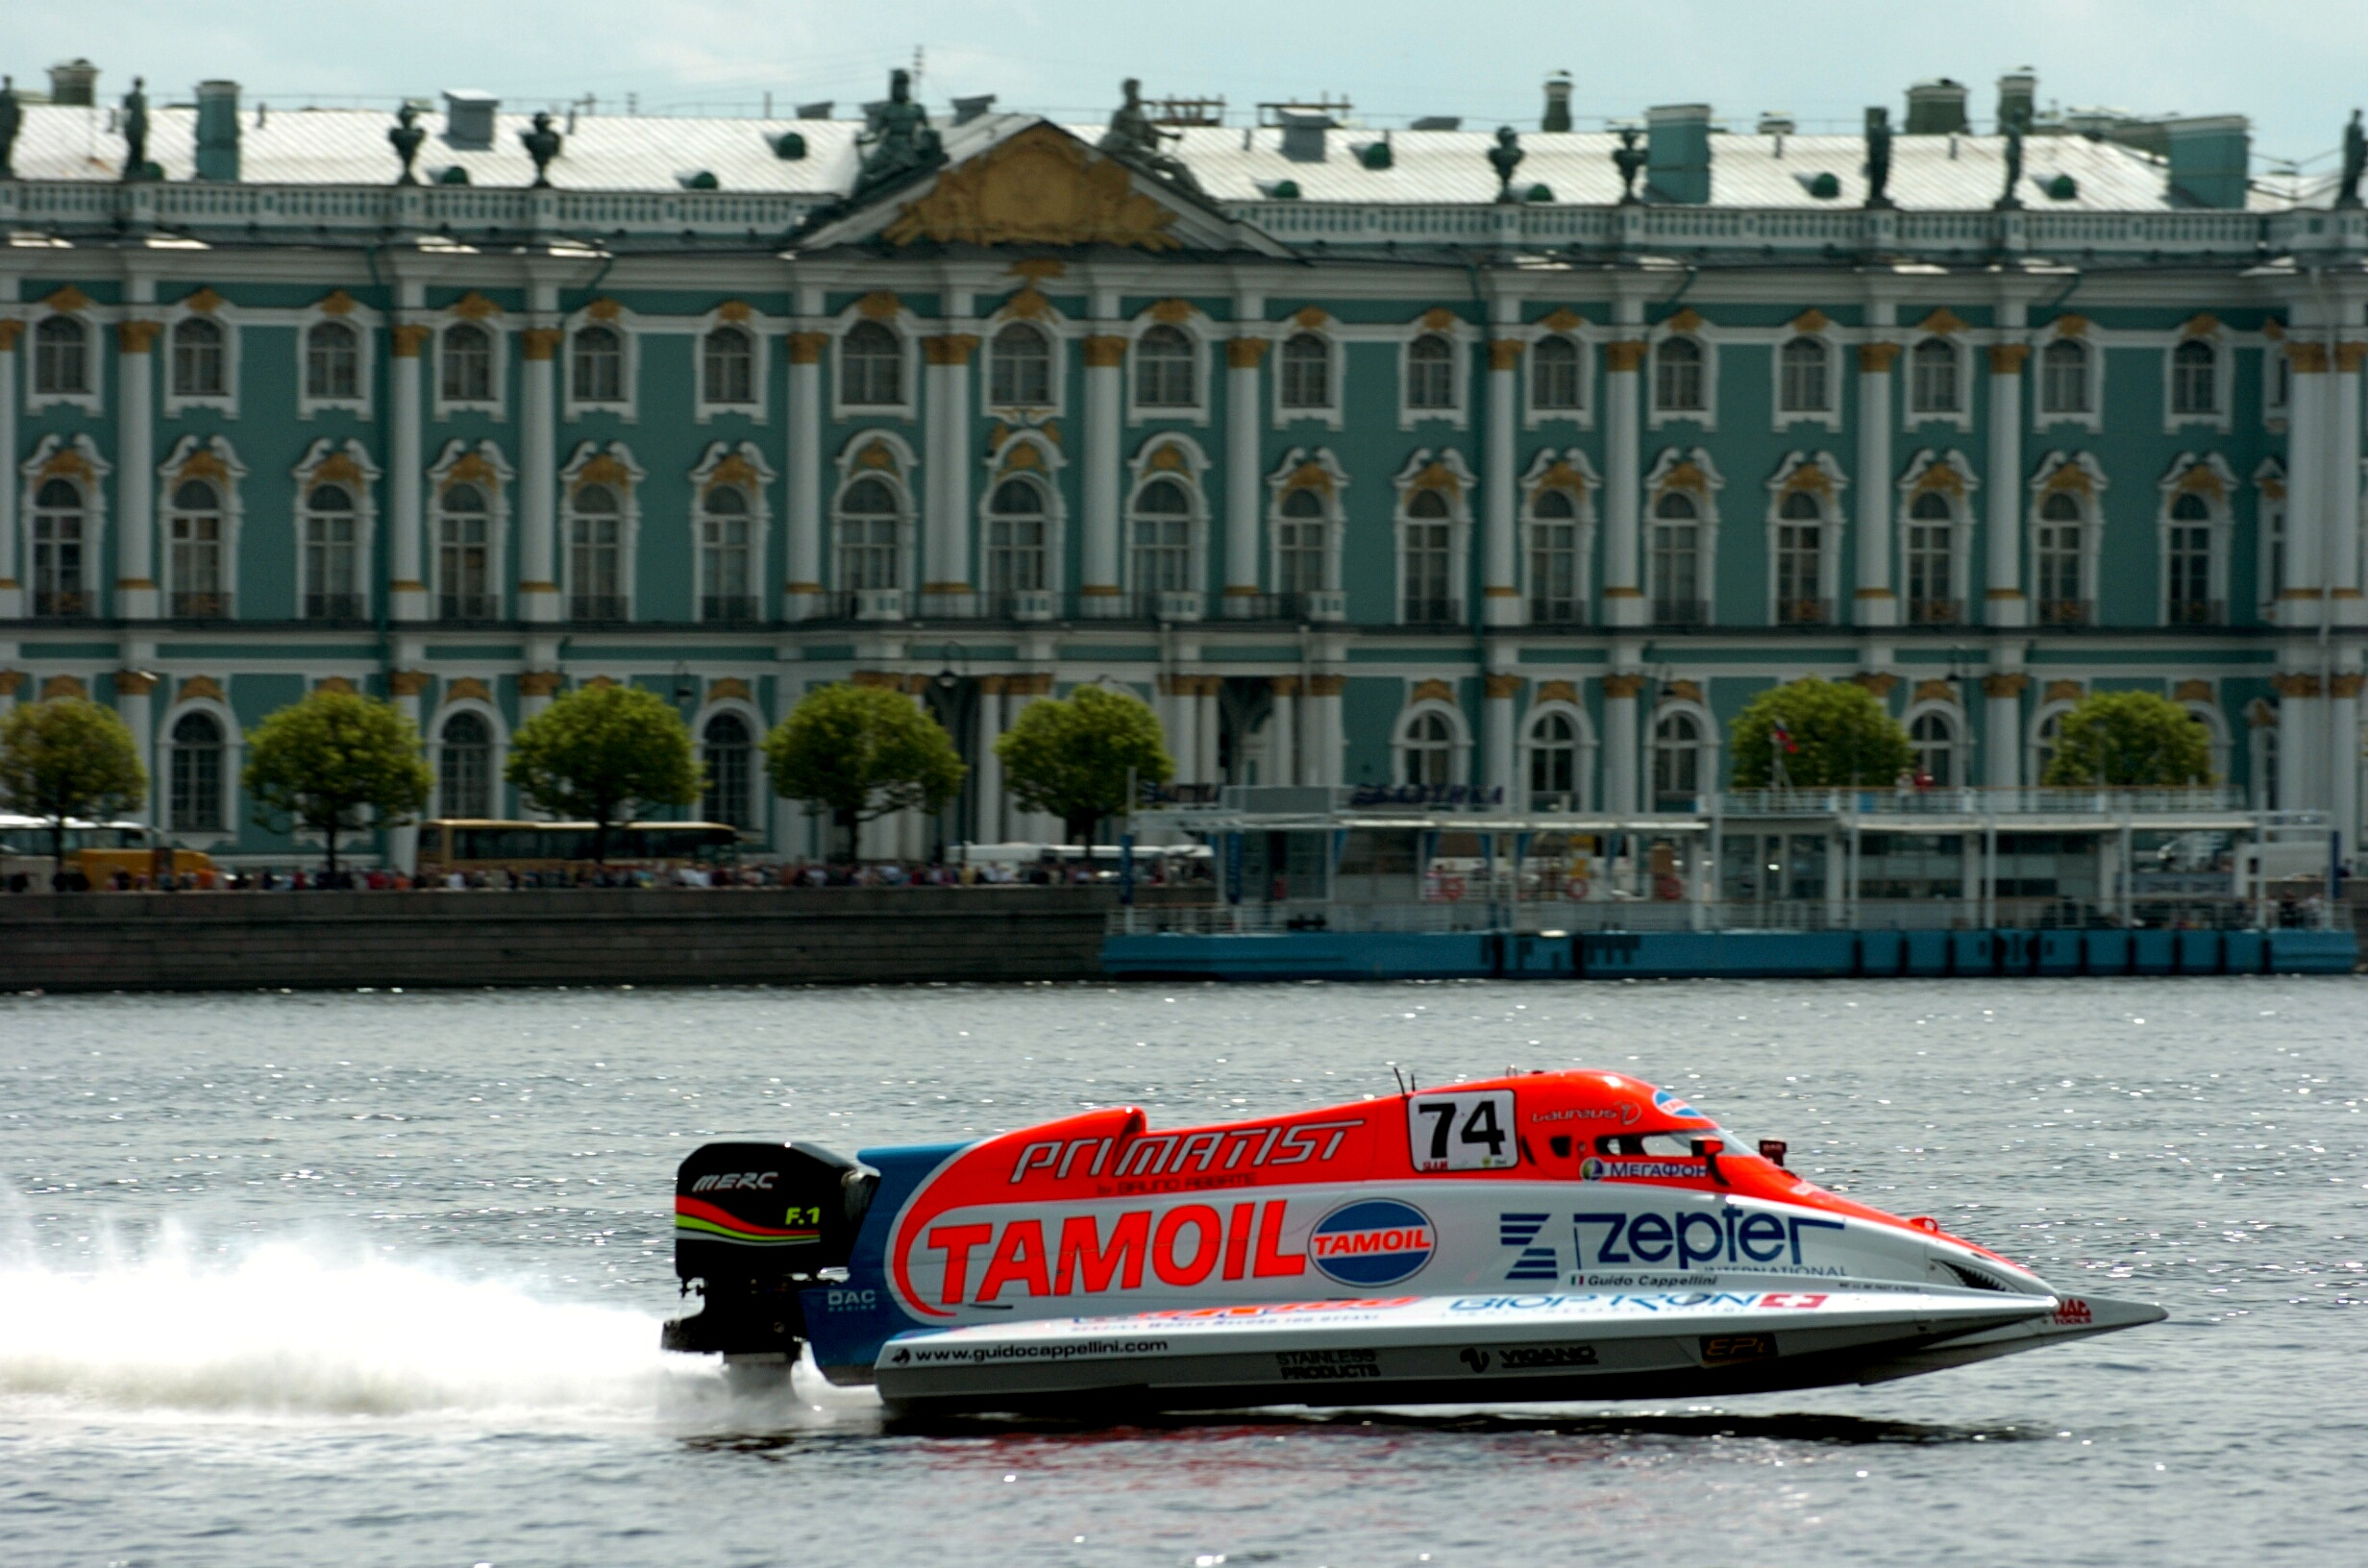 St Petersburg - Russia - 14 June, 2008 - Timed Trials for the Russian Grand Prix on Neva River: Guido Cappellini Tamoil F1. This GP is the 4th leg of the UIM F1 Powerboat World Championship 2008. Picture by Vittorio Ubertone/Idea Marketing.